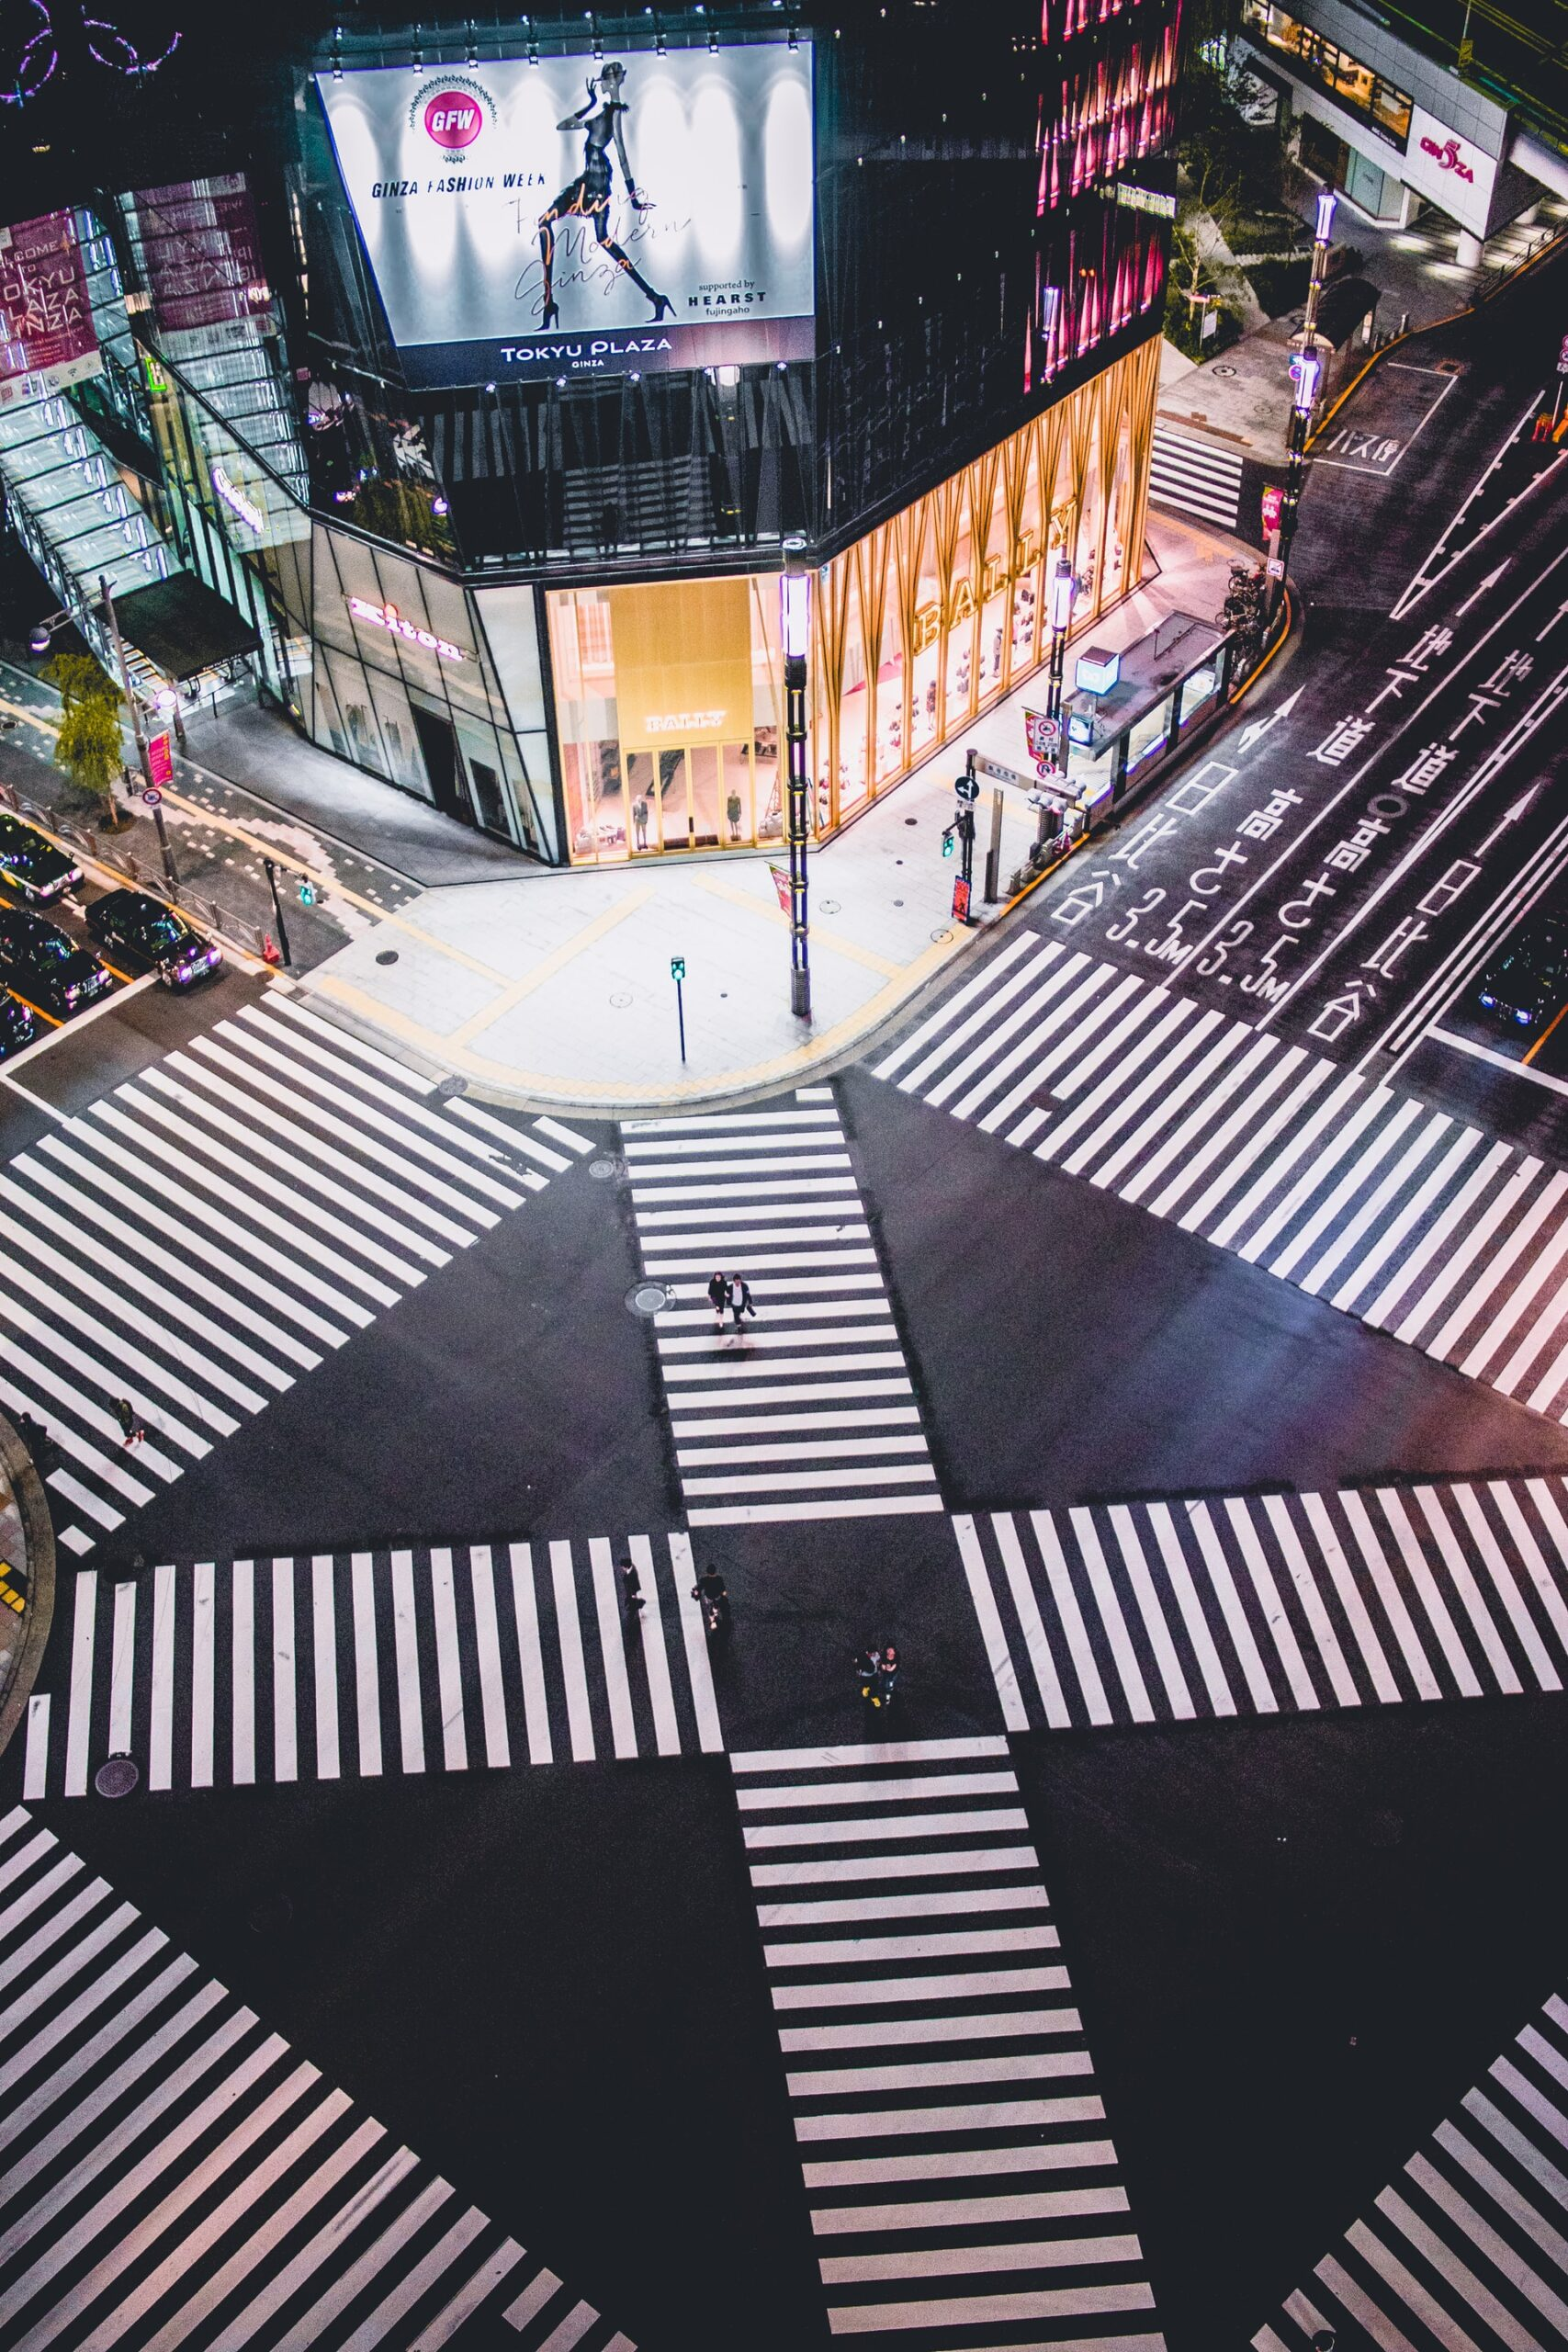 Software & E-Commerce Sector in Japan